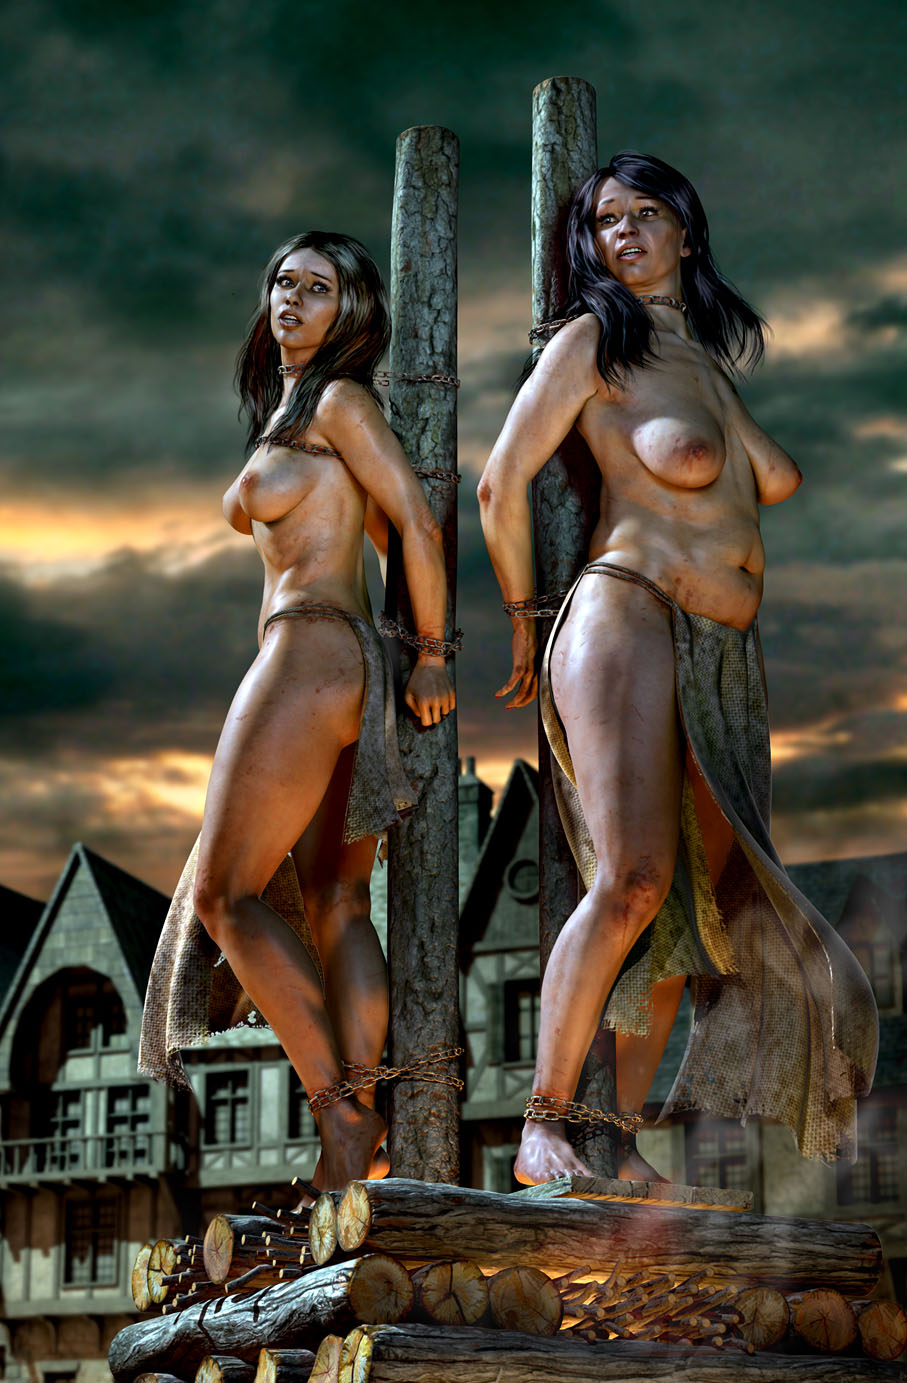 pirate fantasy girl nude